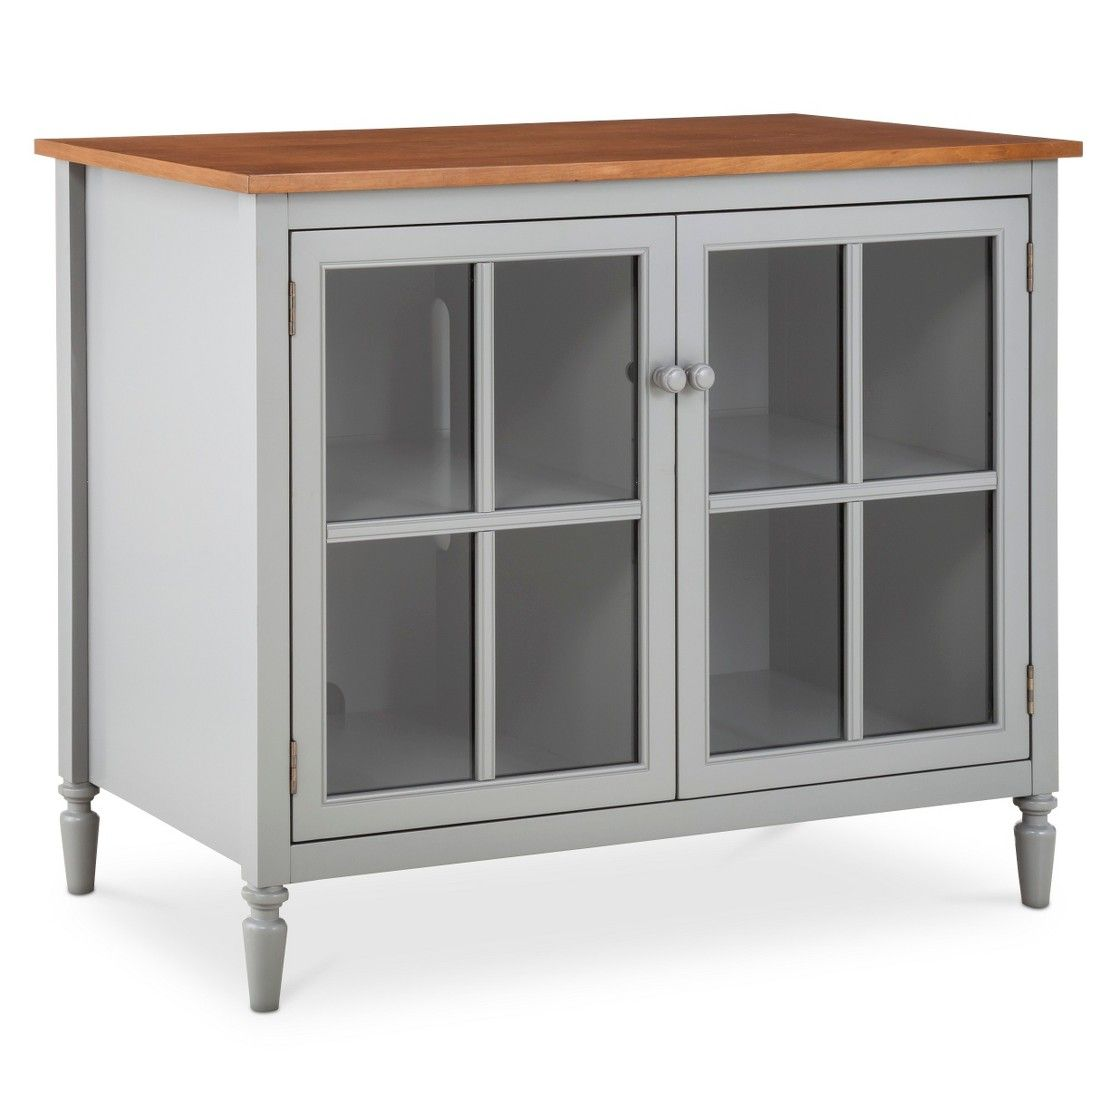 Isabella tall glass door tv stand gray glass doors tv stands isabella tall glass door tv stand gray planetlyrics Choice Image